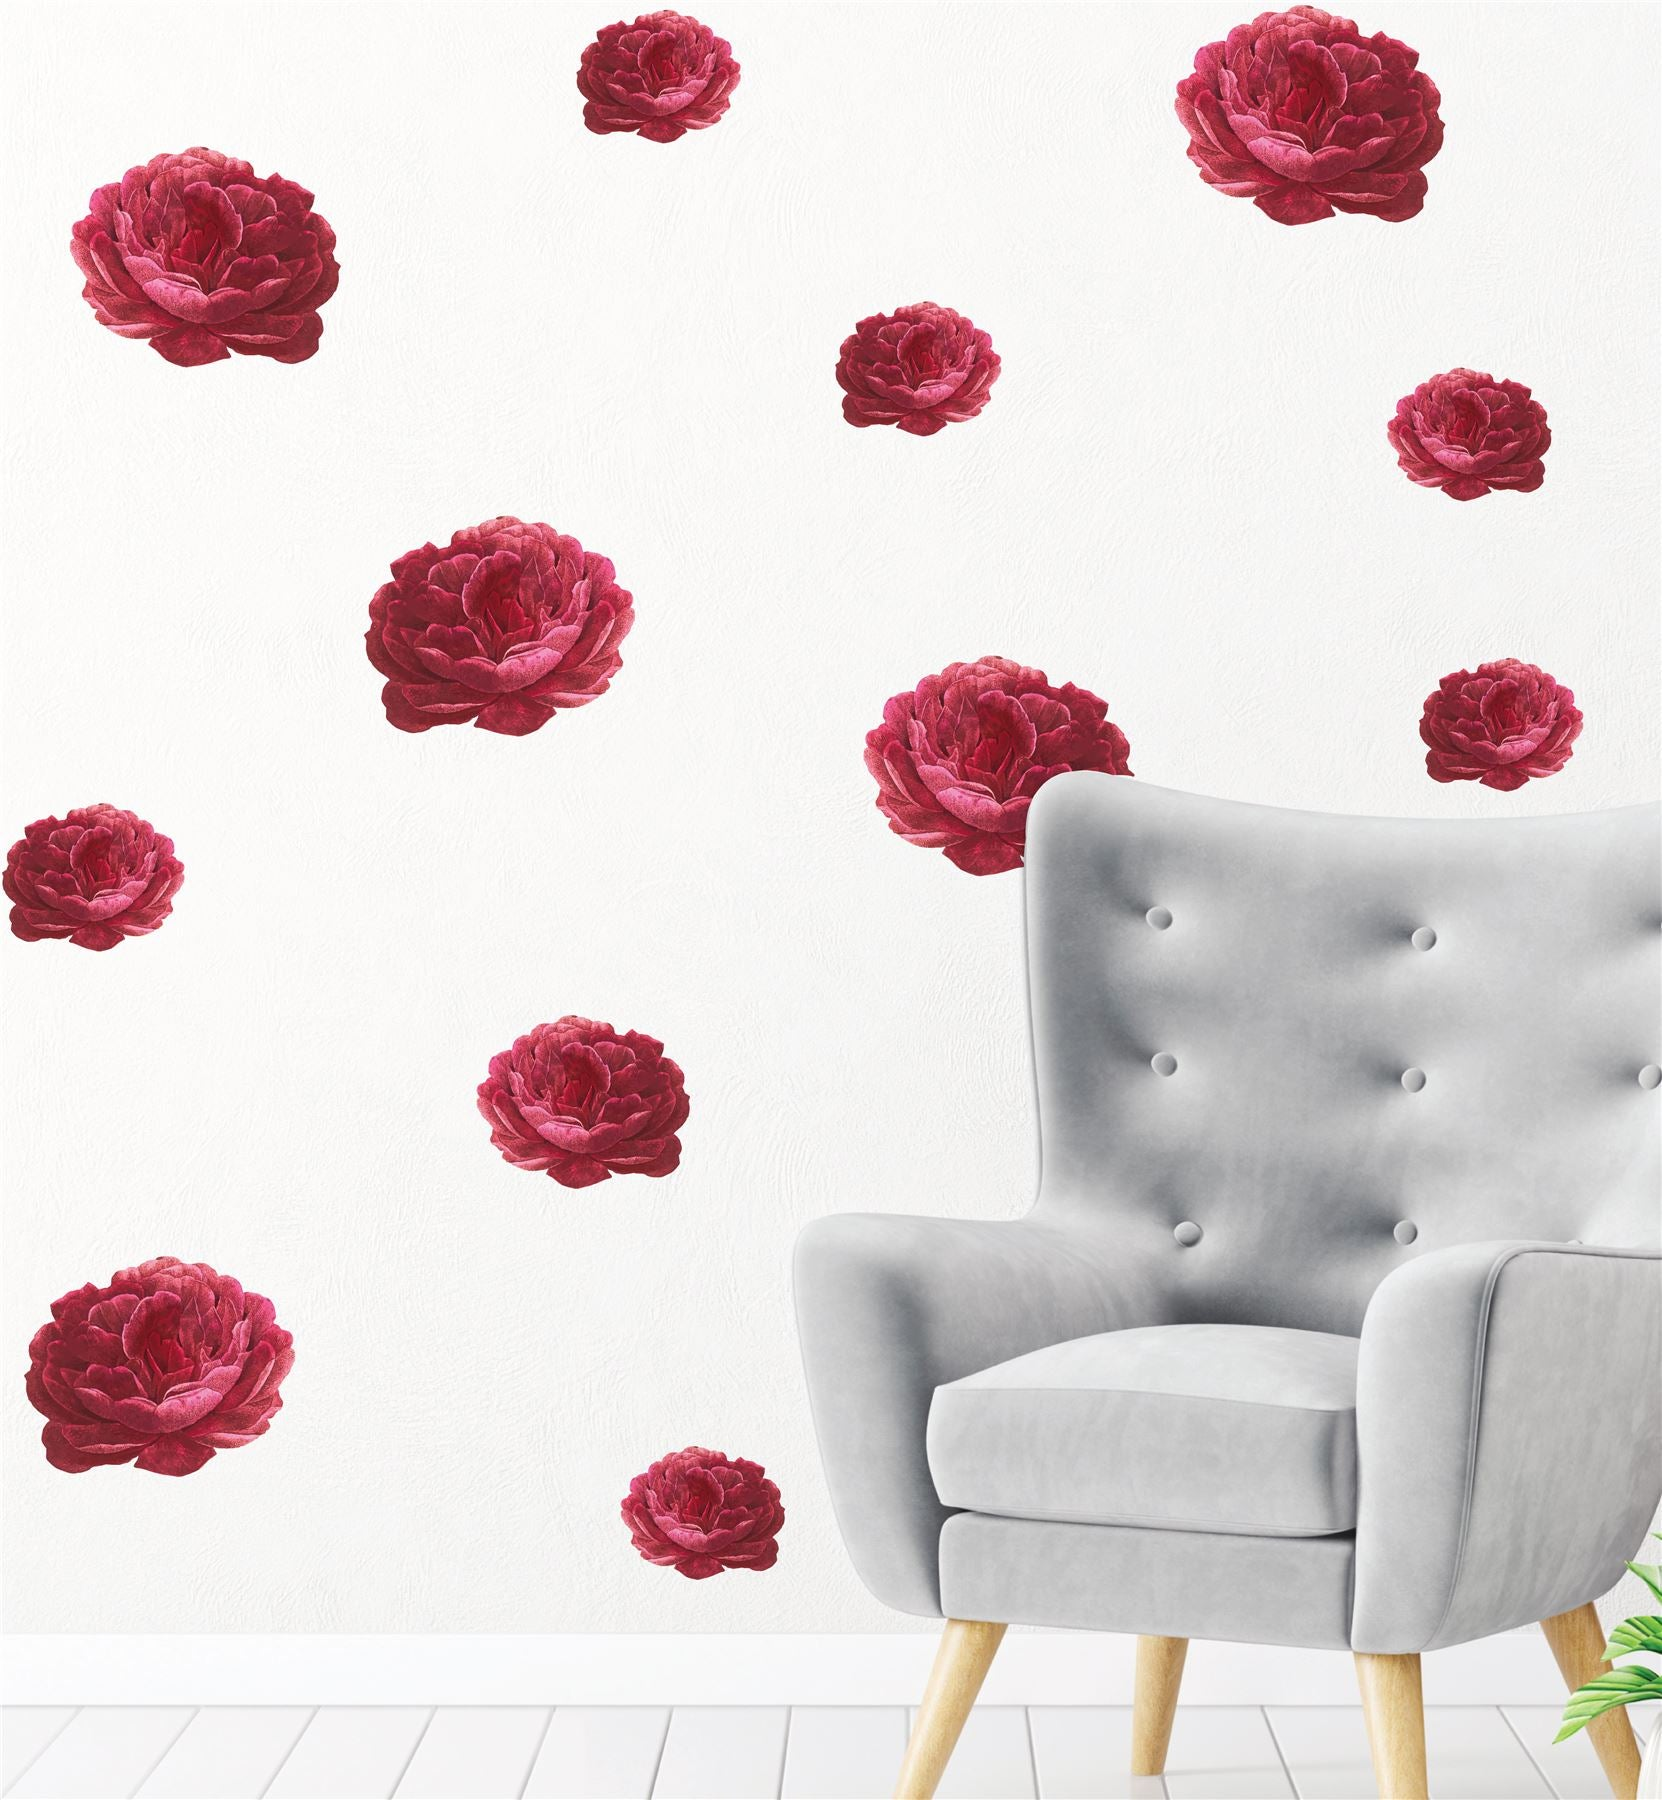 Roses (Collection Of 20) Wall Sticker Decal